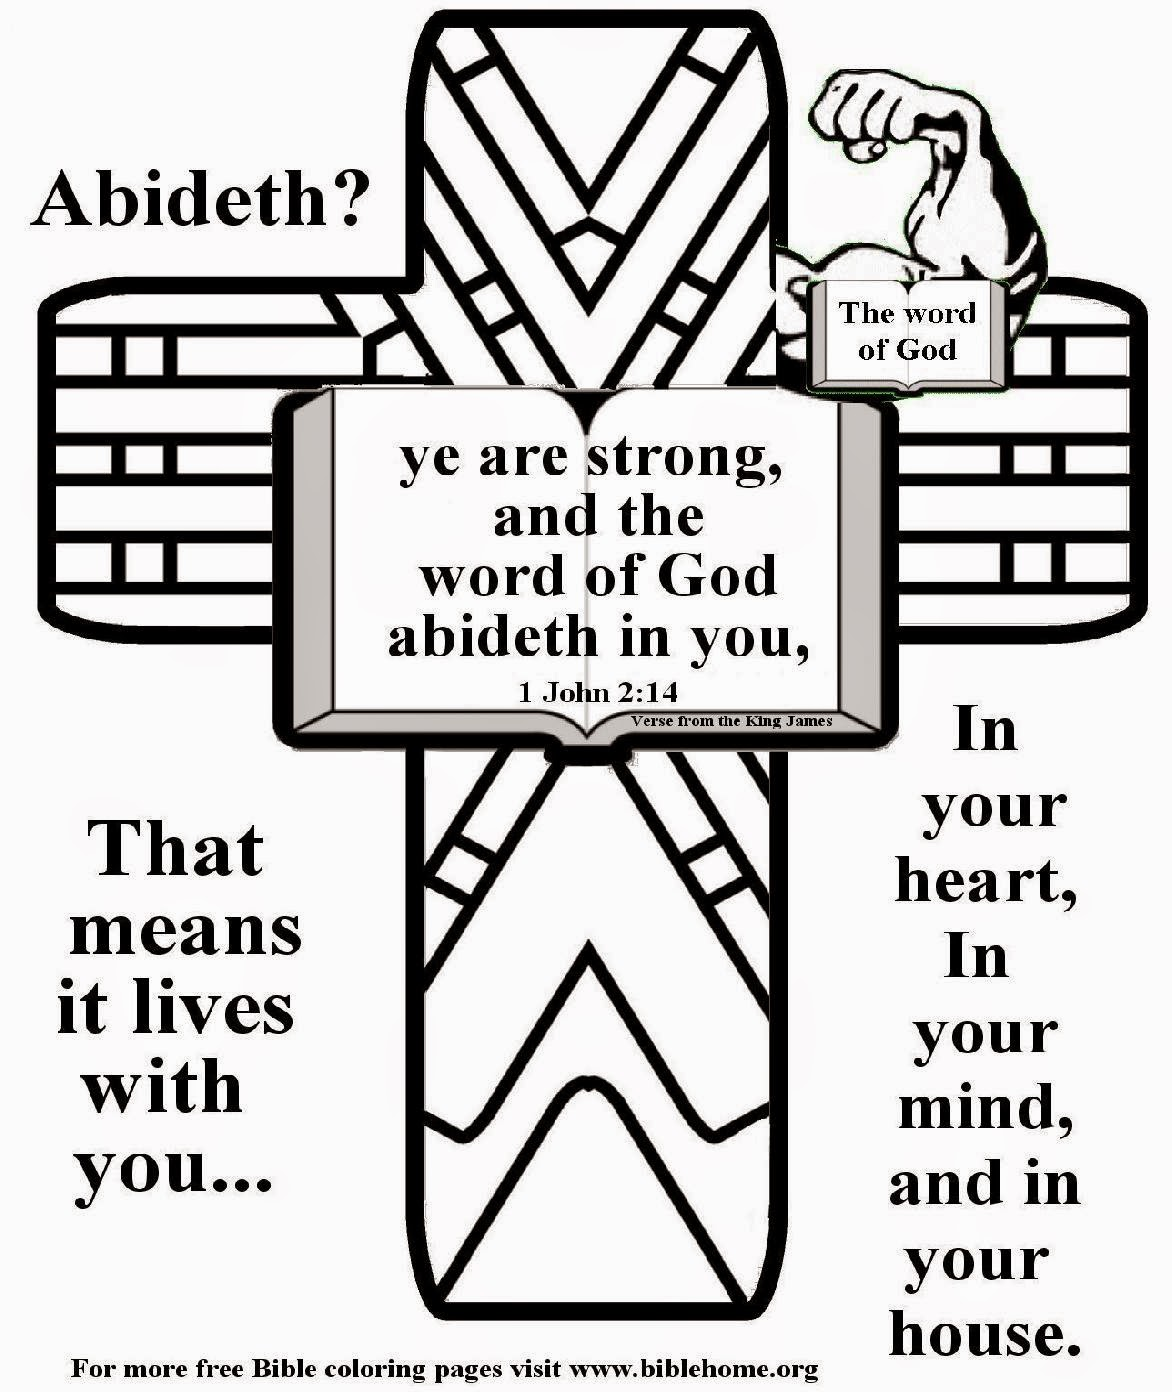 Coloring pages with bible verses - Free Christian Coloring Pages Free Coloring Pages